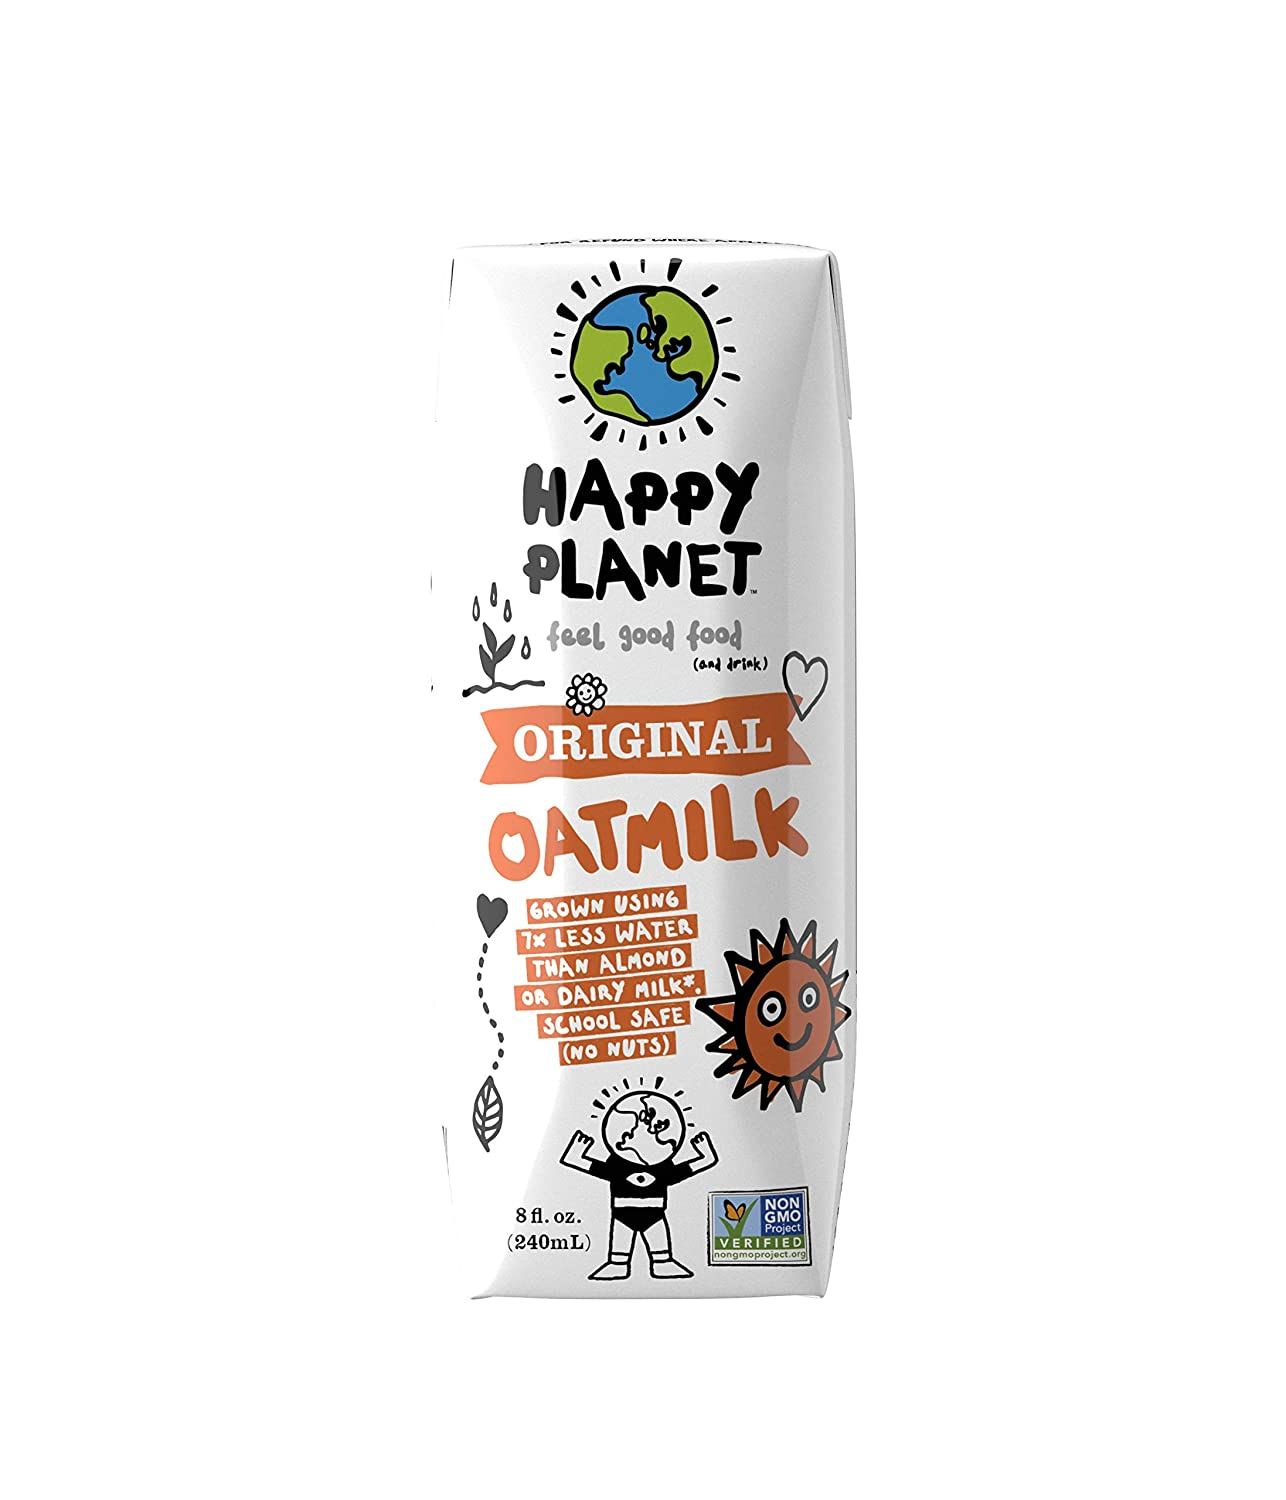 Happy Planet - OatMilk Original | 24 Pack – 8 FL OZ. (240ML) | Gluten Free Plant Based Beverage | Non GMO | Dairy Free | Vegan Friendly | Nut Free | Soy Free | Shelf Stable